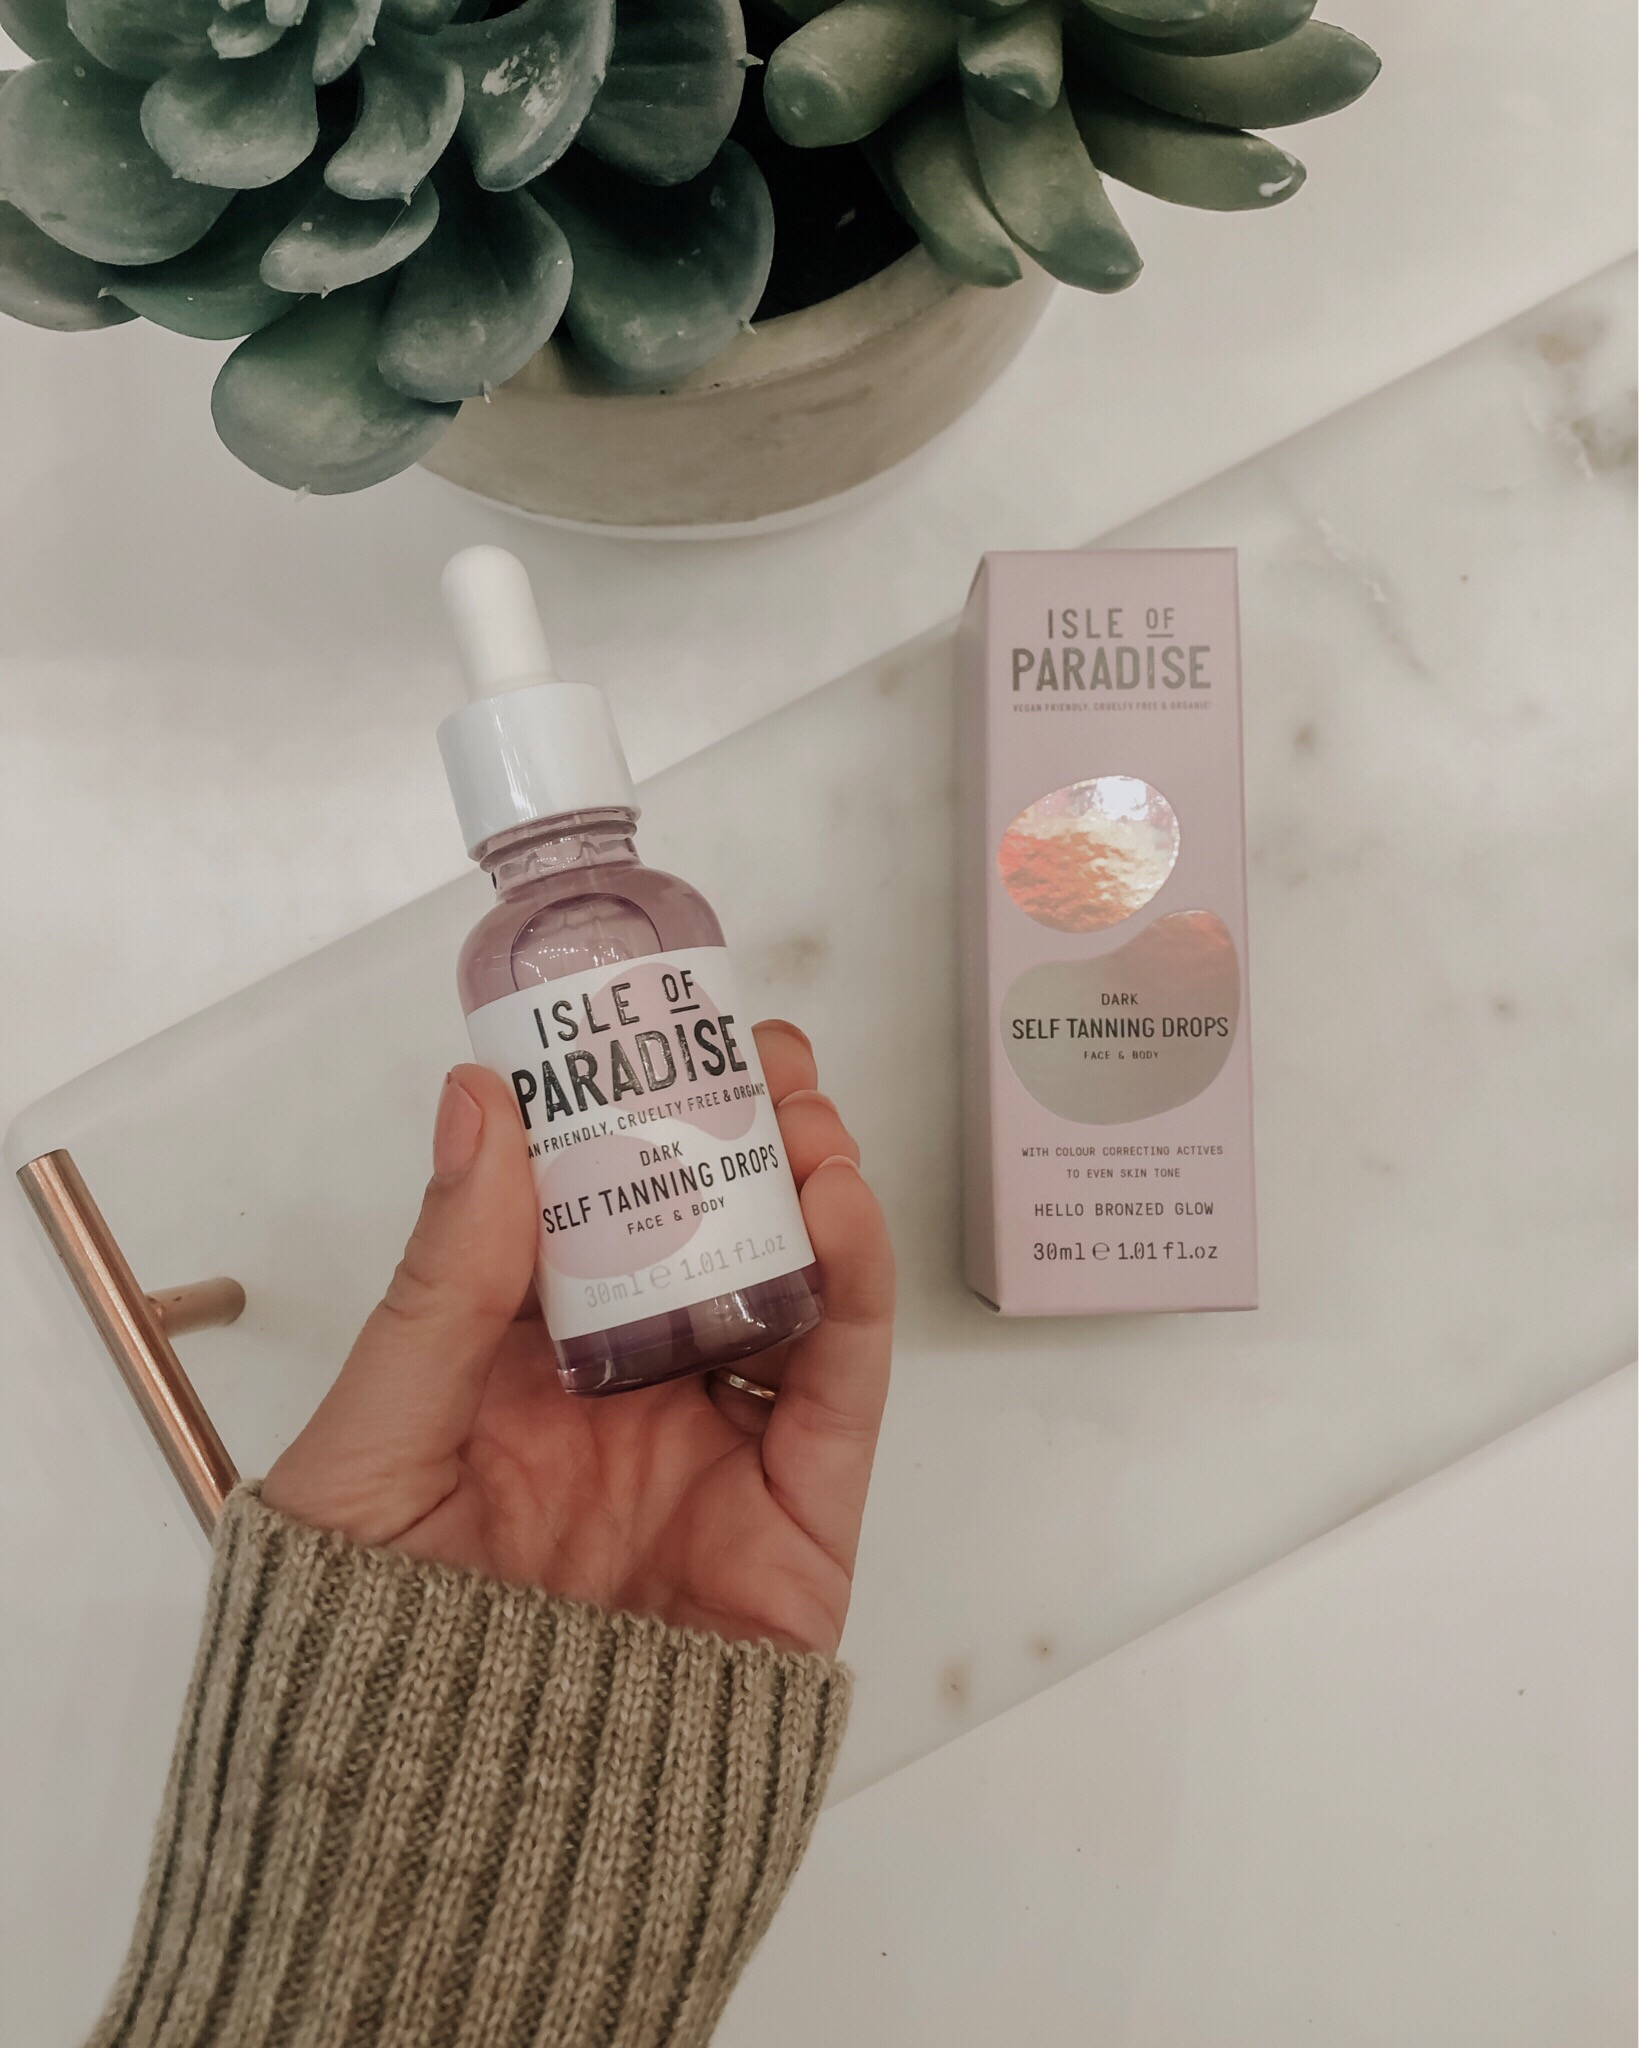 MY TOP 10 BEAUTY MUST-HAVES FROM 2019- Jaclyn De Leon Style- Sharing my holy grail beauty products that I couldn't live without this past year